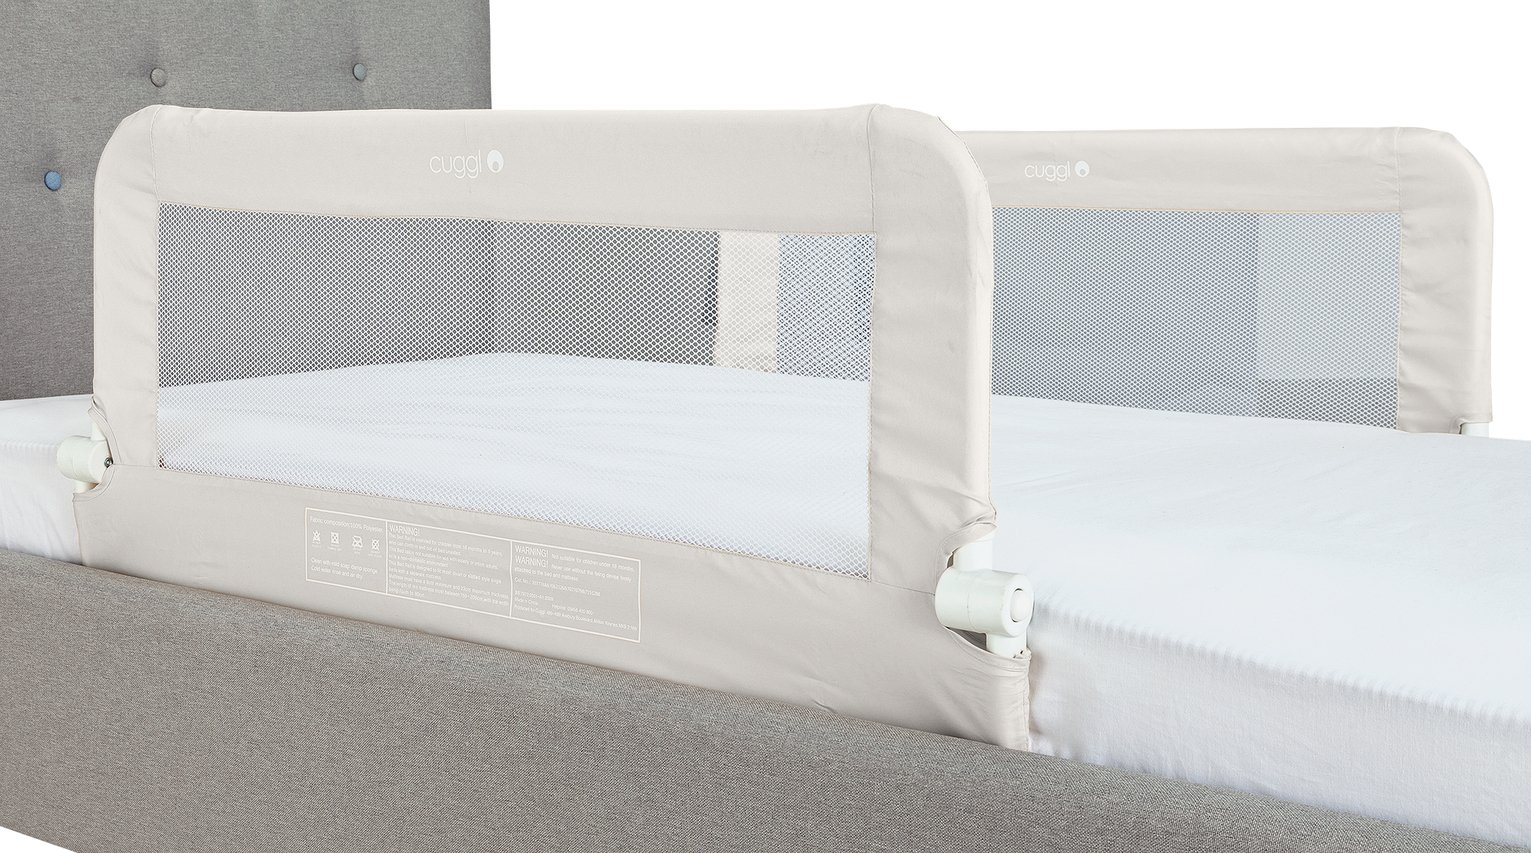 Image of Cuggl Double Bed Rail